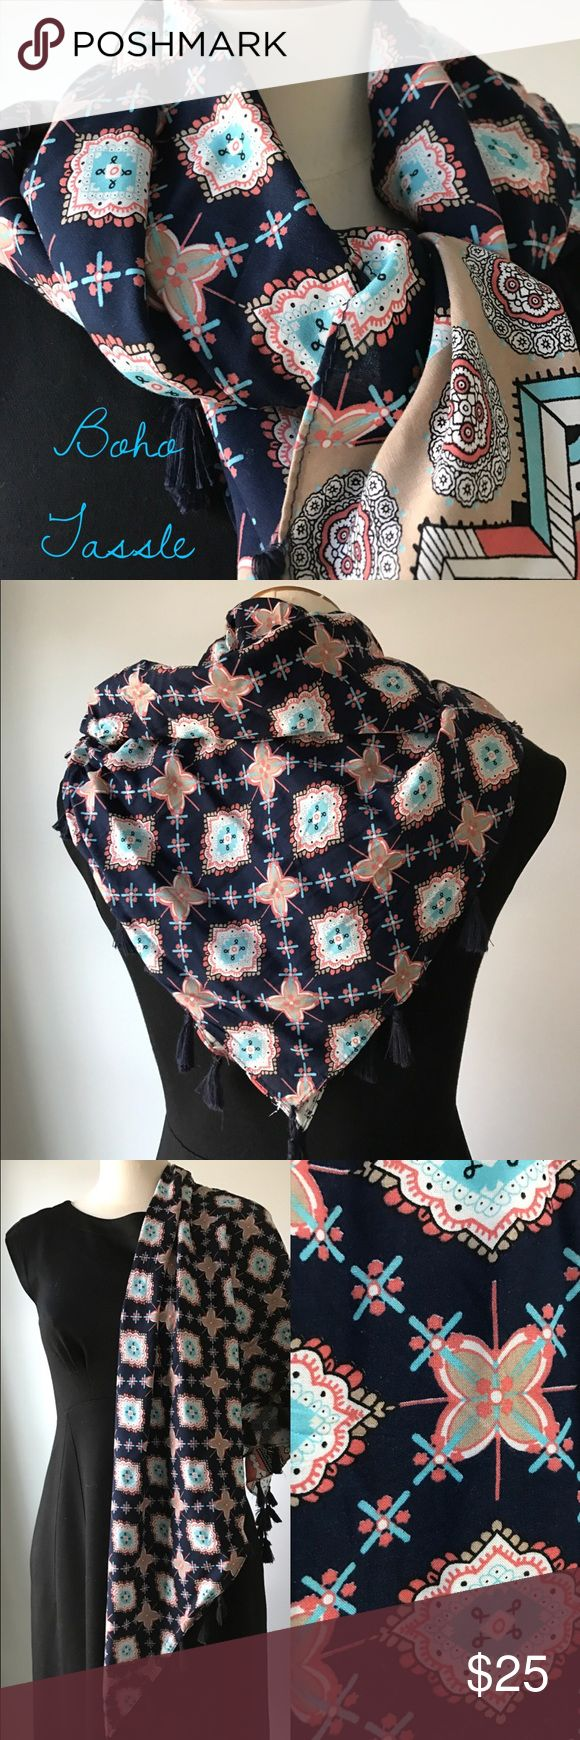 BOHO Tassle Scarf Pretty pattern...pretty colors in this cotton scarf.  Navy, orange, aqua and white with navy tassels. NWOT. Pristine. Great for spring/summer. Multi-purpose square. Wear as a scarf or pareo. Accessories Scarves & Wraps